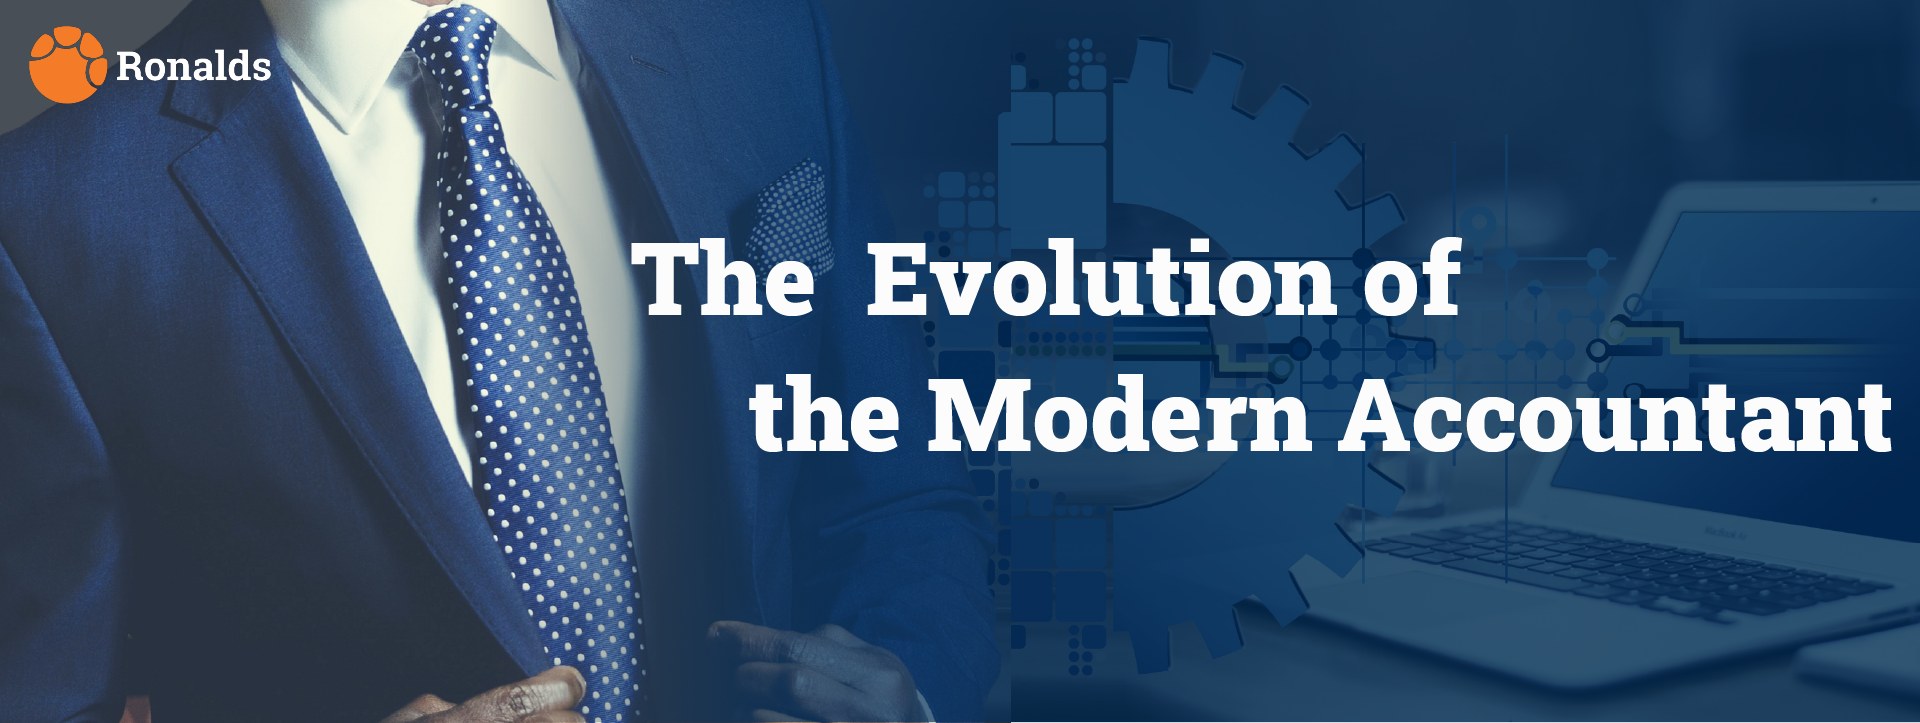 The evolution of the modern accountant.